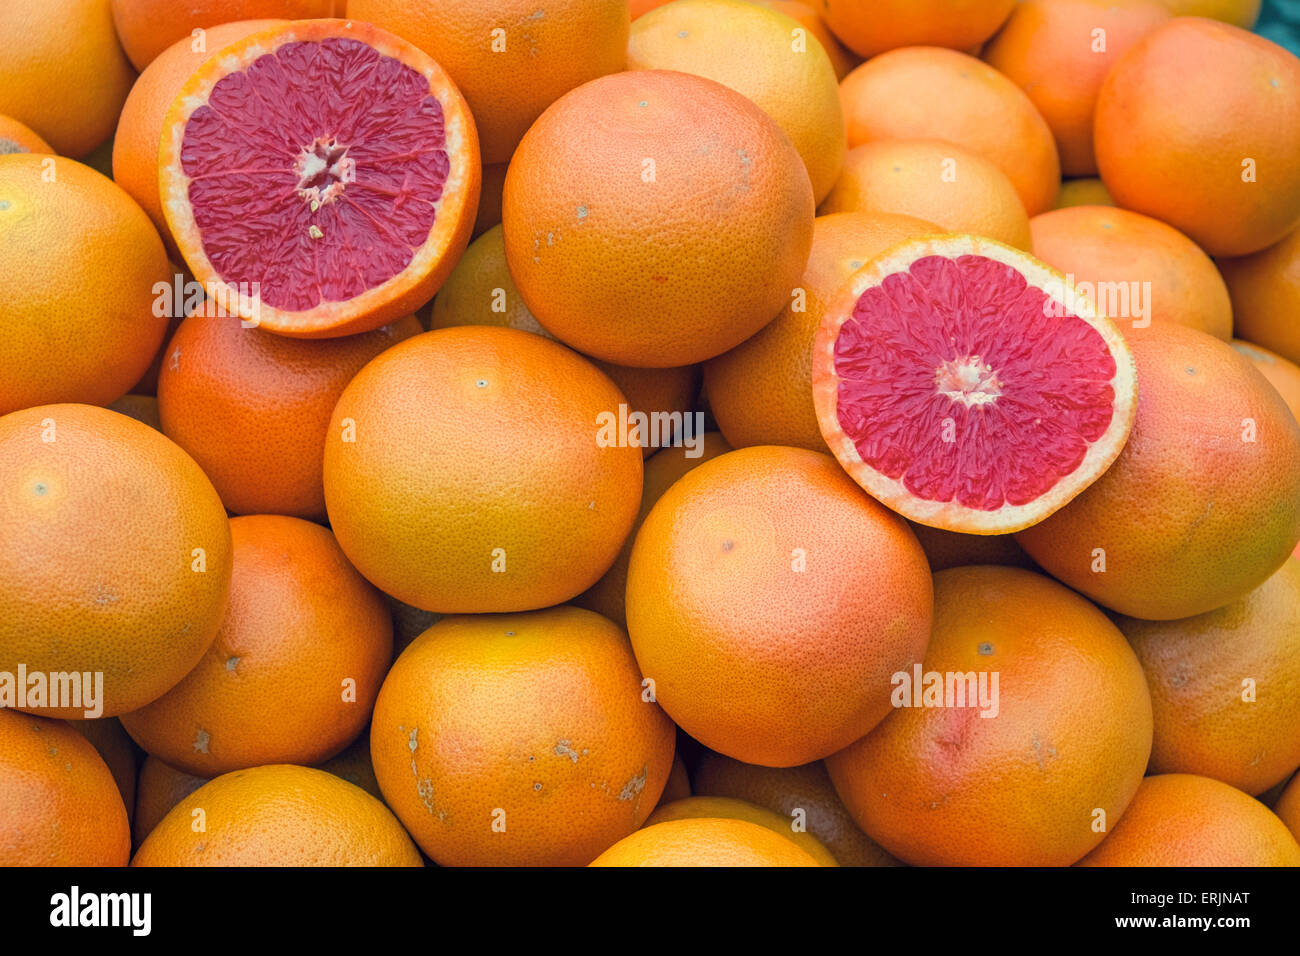 Ripe blood oranges for sale on a market - Stock Image